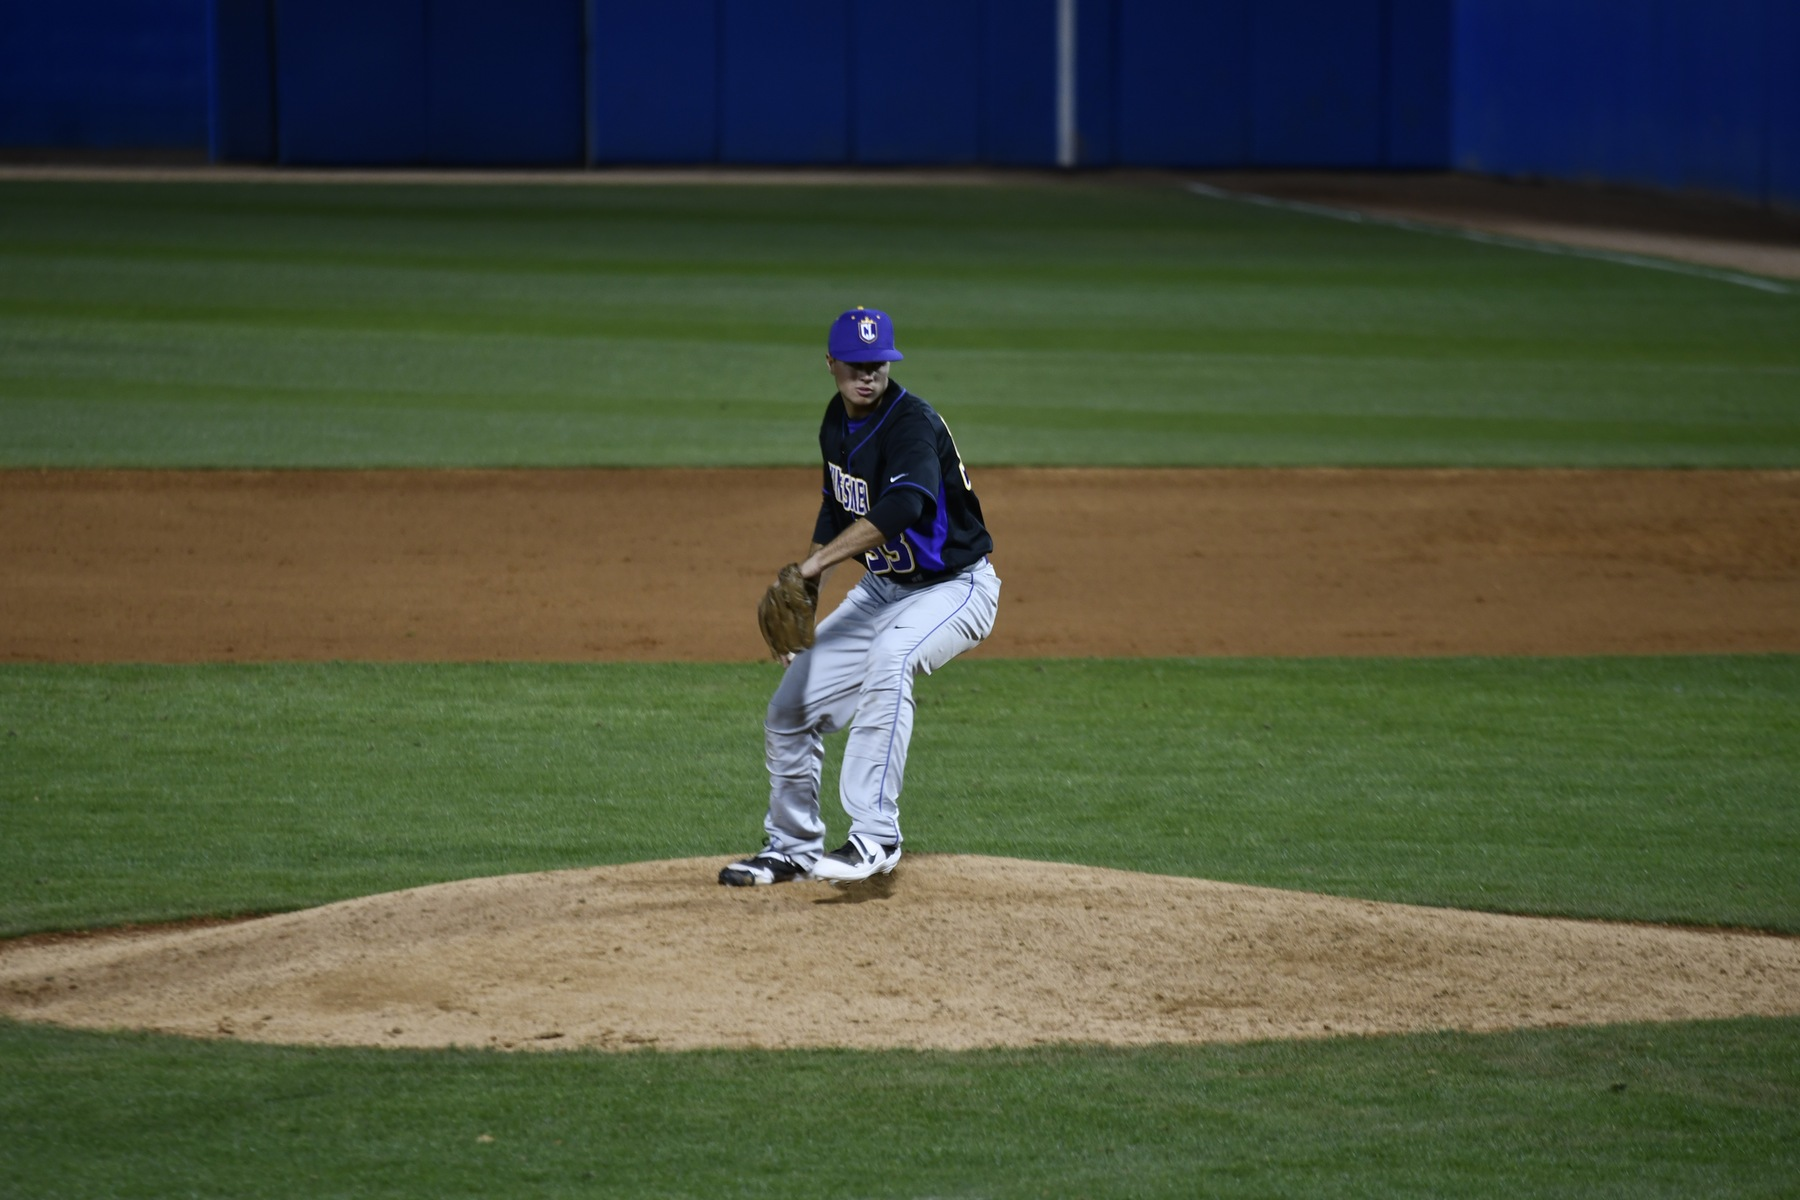 Troy Frazier threw six innings of shutout baseball while racking up 11 strikeouts.